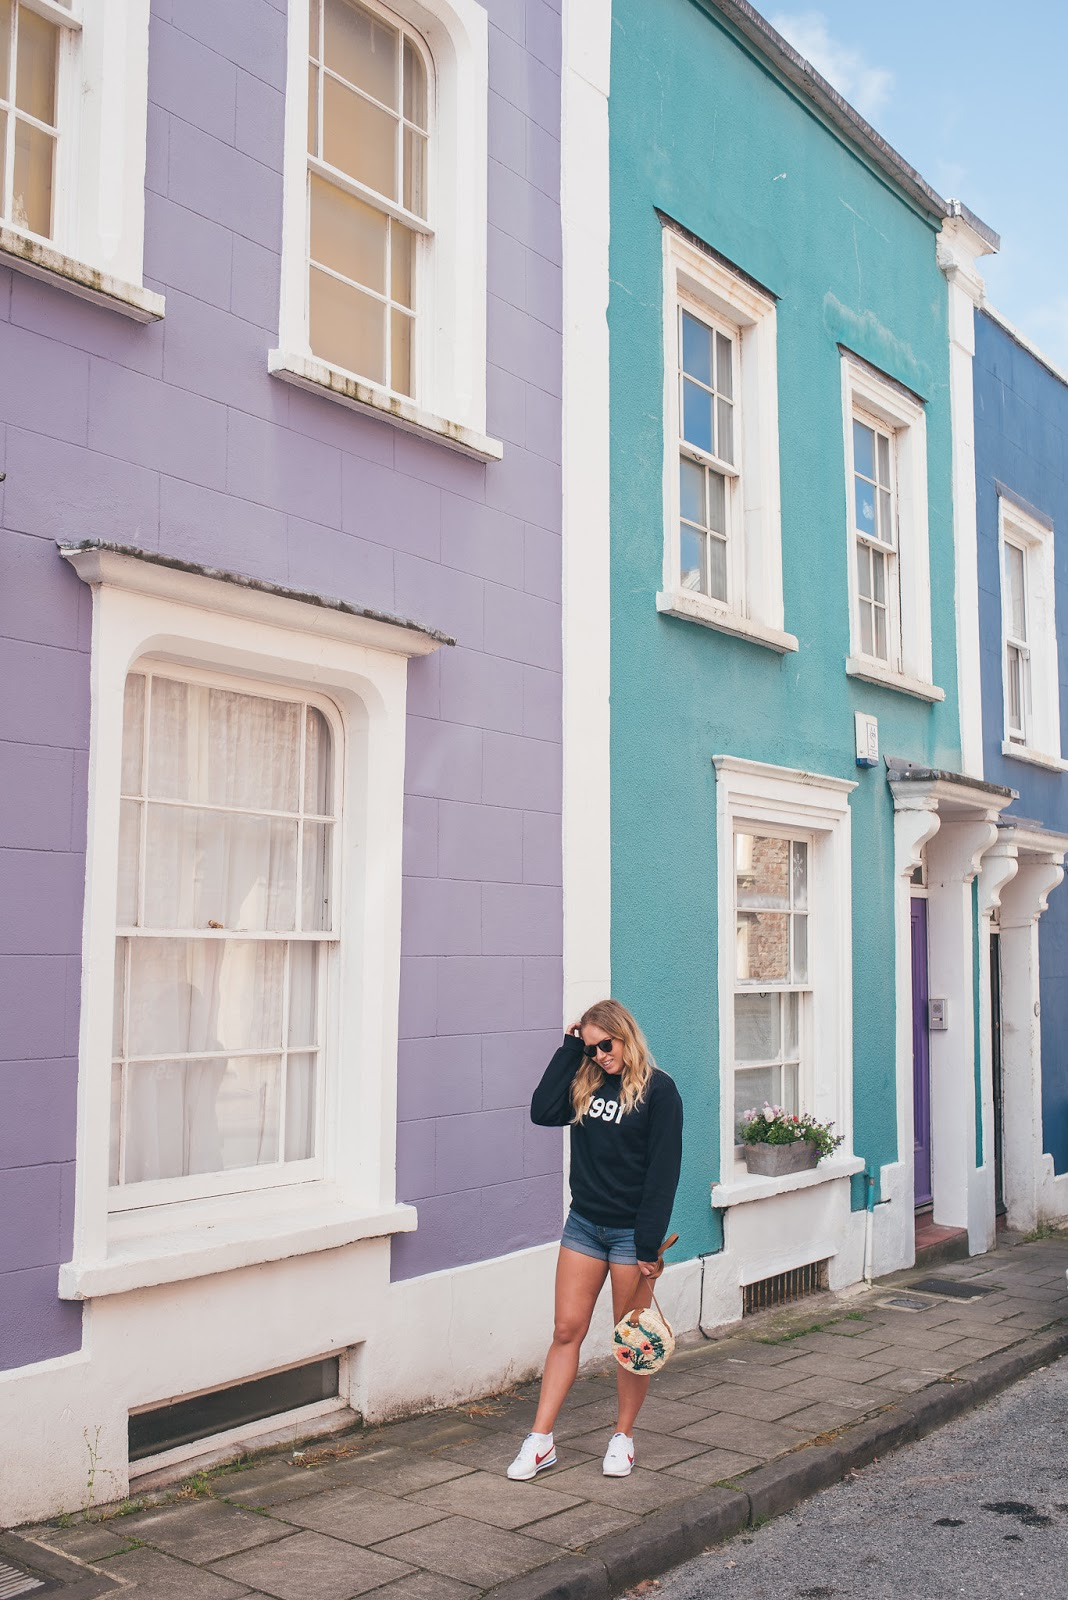 Rachel Emily Posing in front of Cliftonwood, Bristol Pastel coloured houses